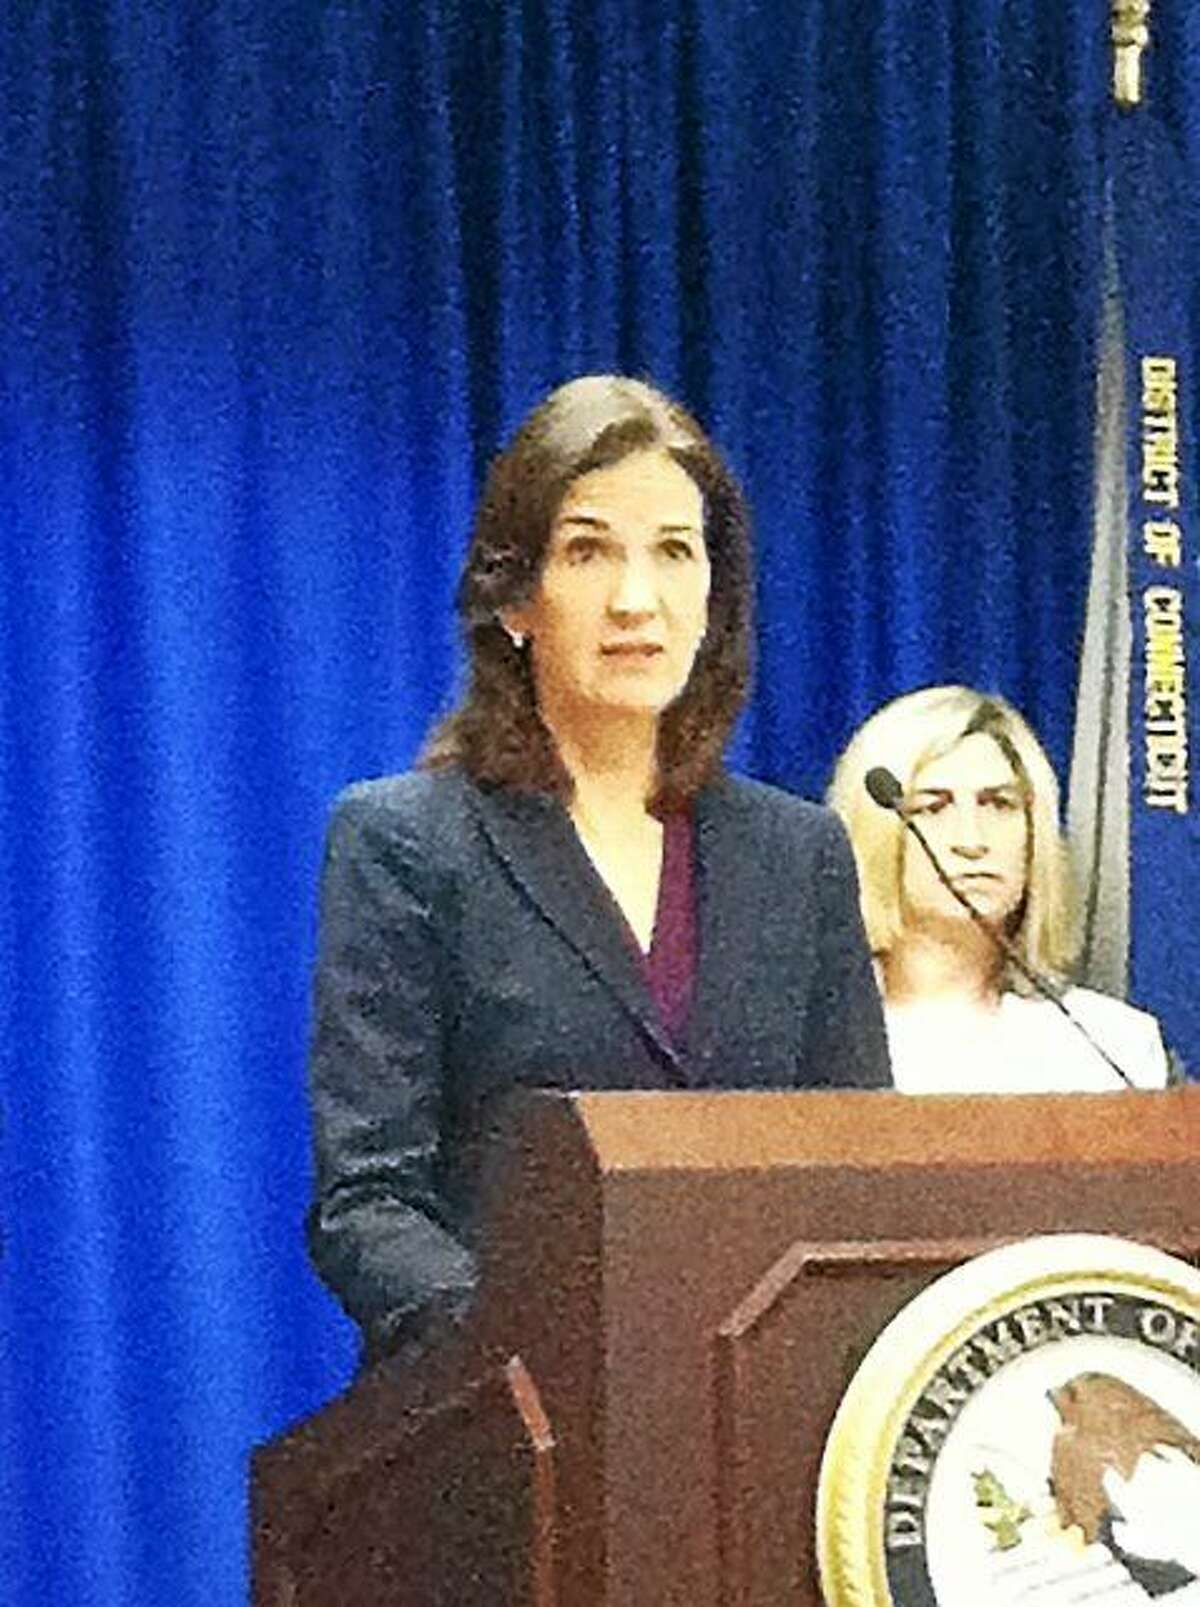 U.S. Attorney Deirdre Daly speaks at a press conference in New Haven Wednesday announcing the formation of a task force to combat public corruption, and a new hotline number. / Photo by Michelle Tuccitto Sullo